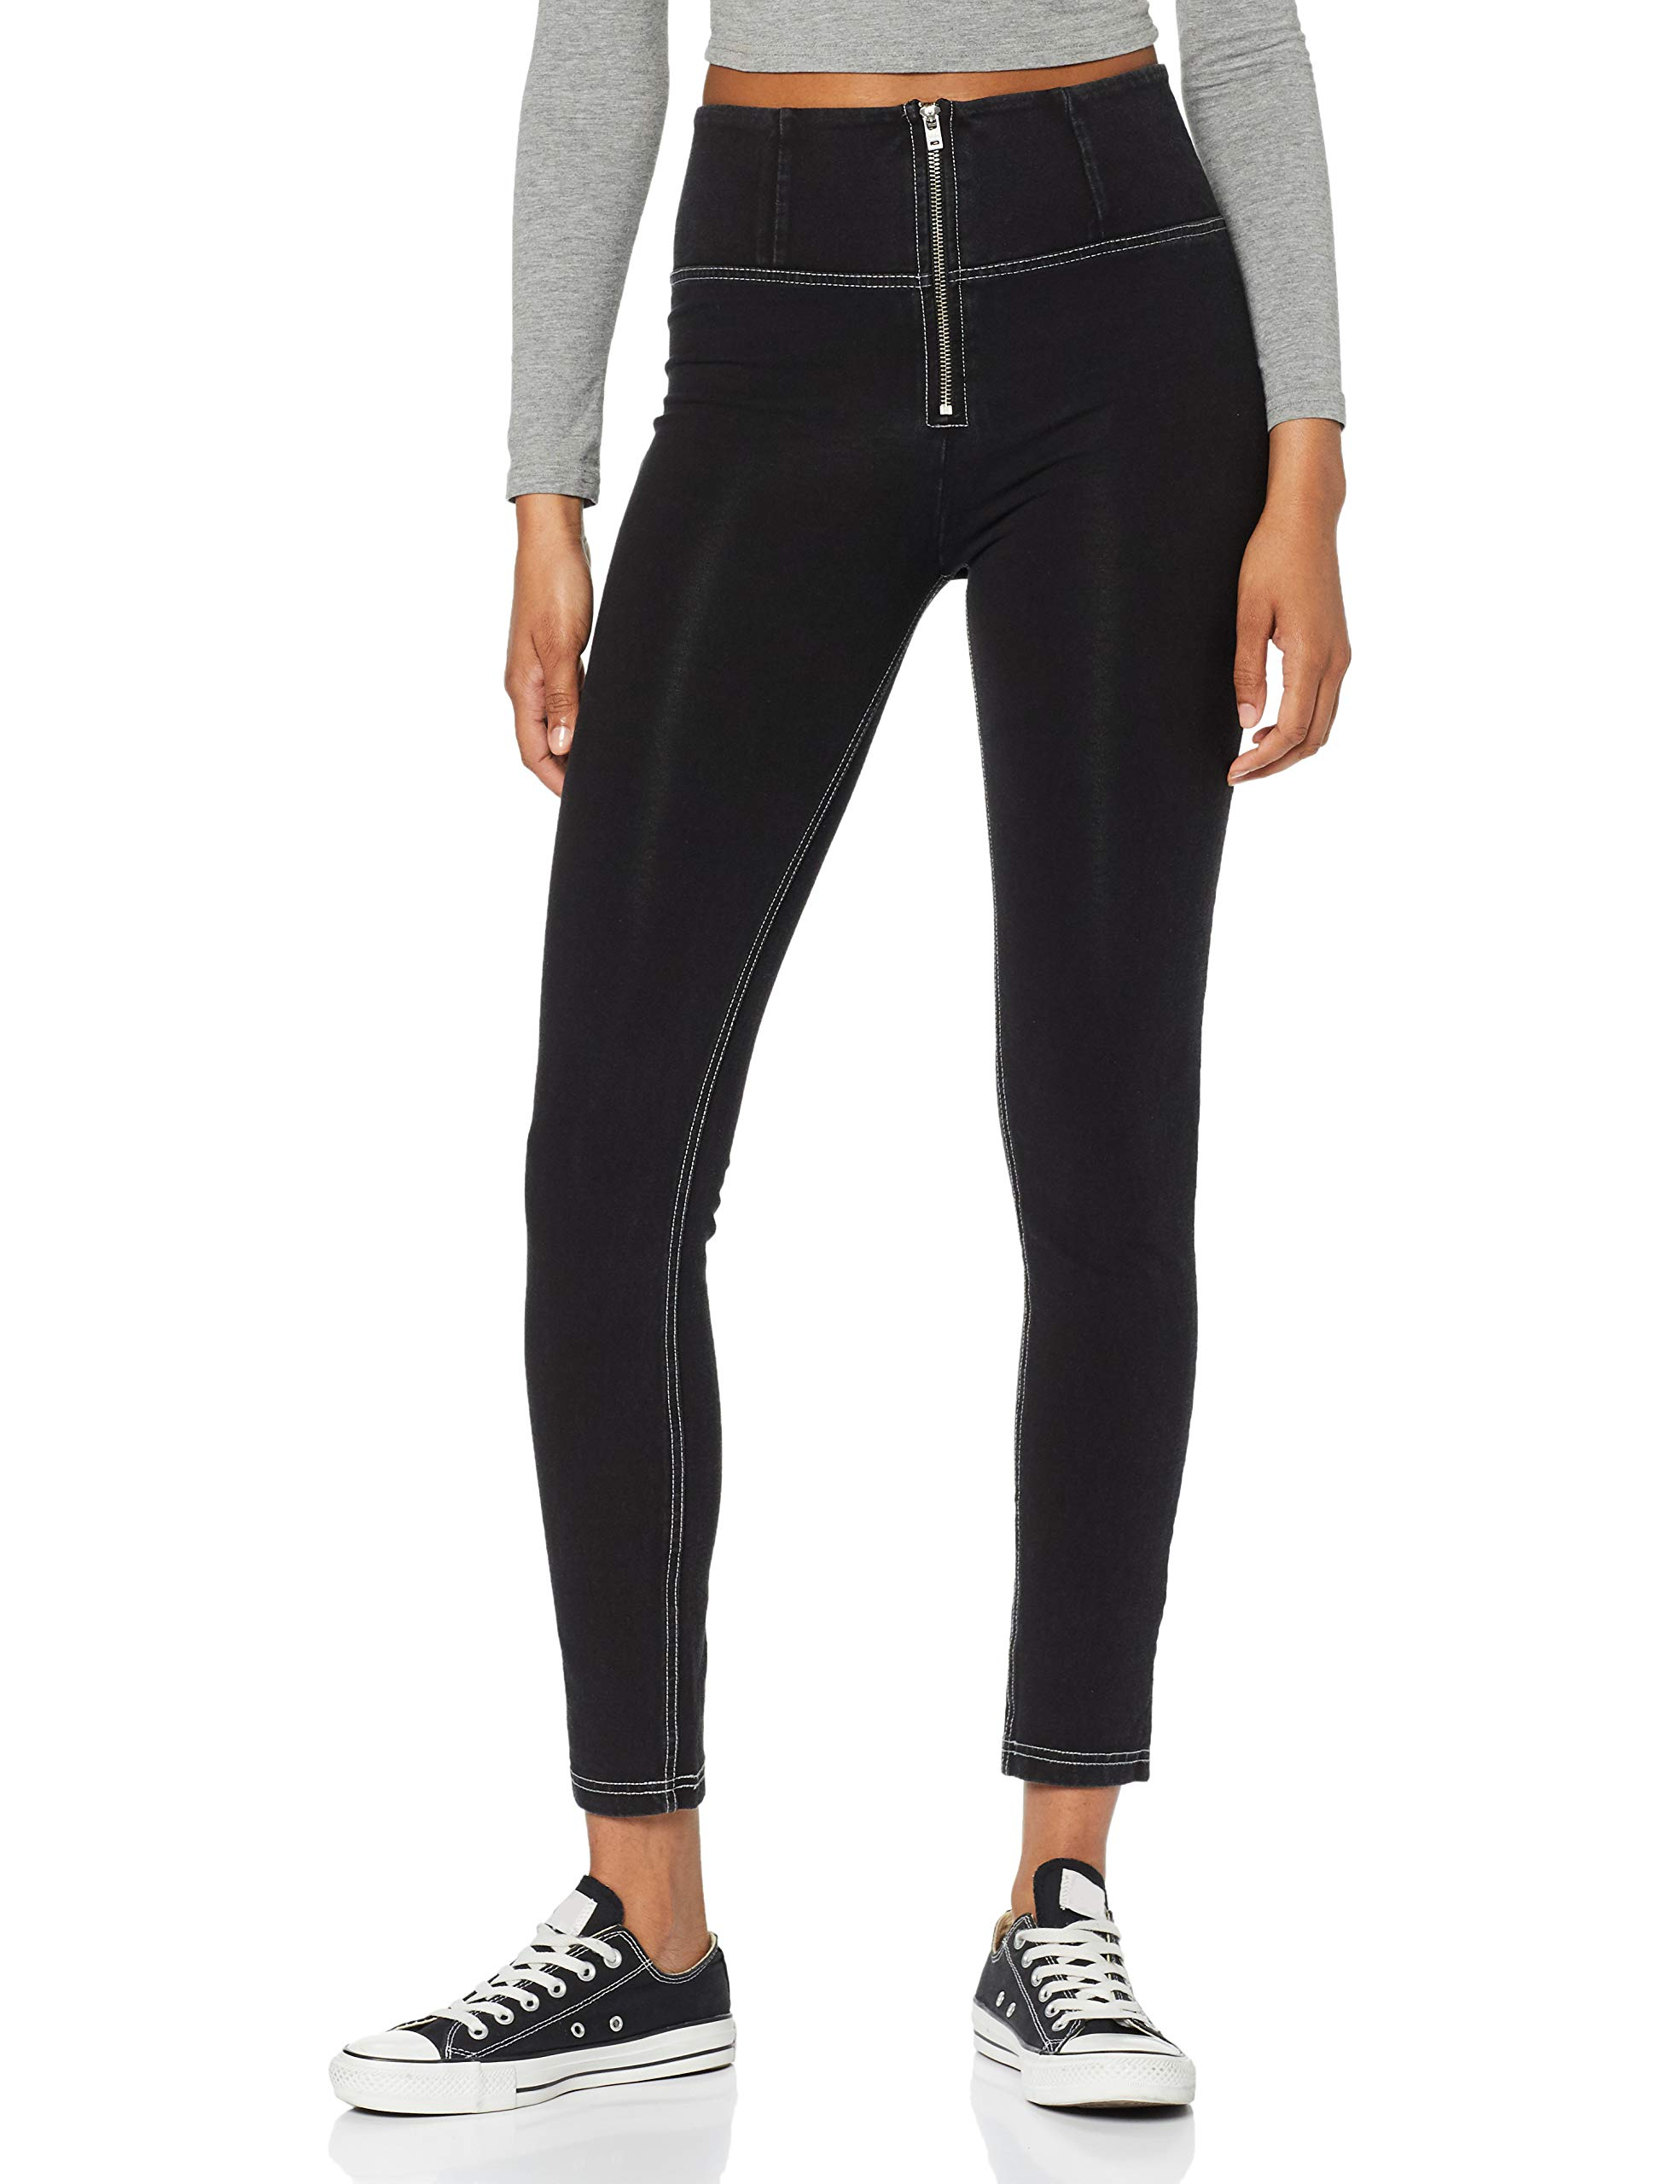 Wrup1hj01e PantalonBleujeans cuciture Freddy Nero FabricantSmallFemme Grigie J7g36taille WeEH2Y9DI